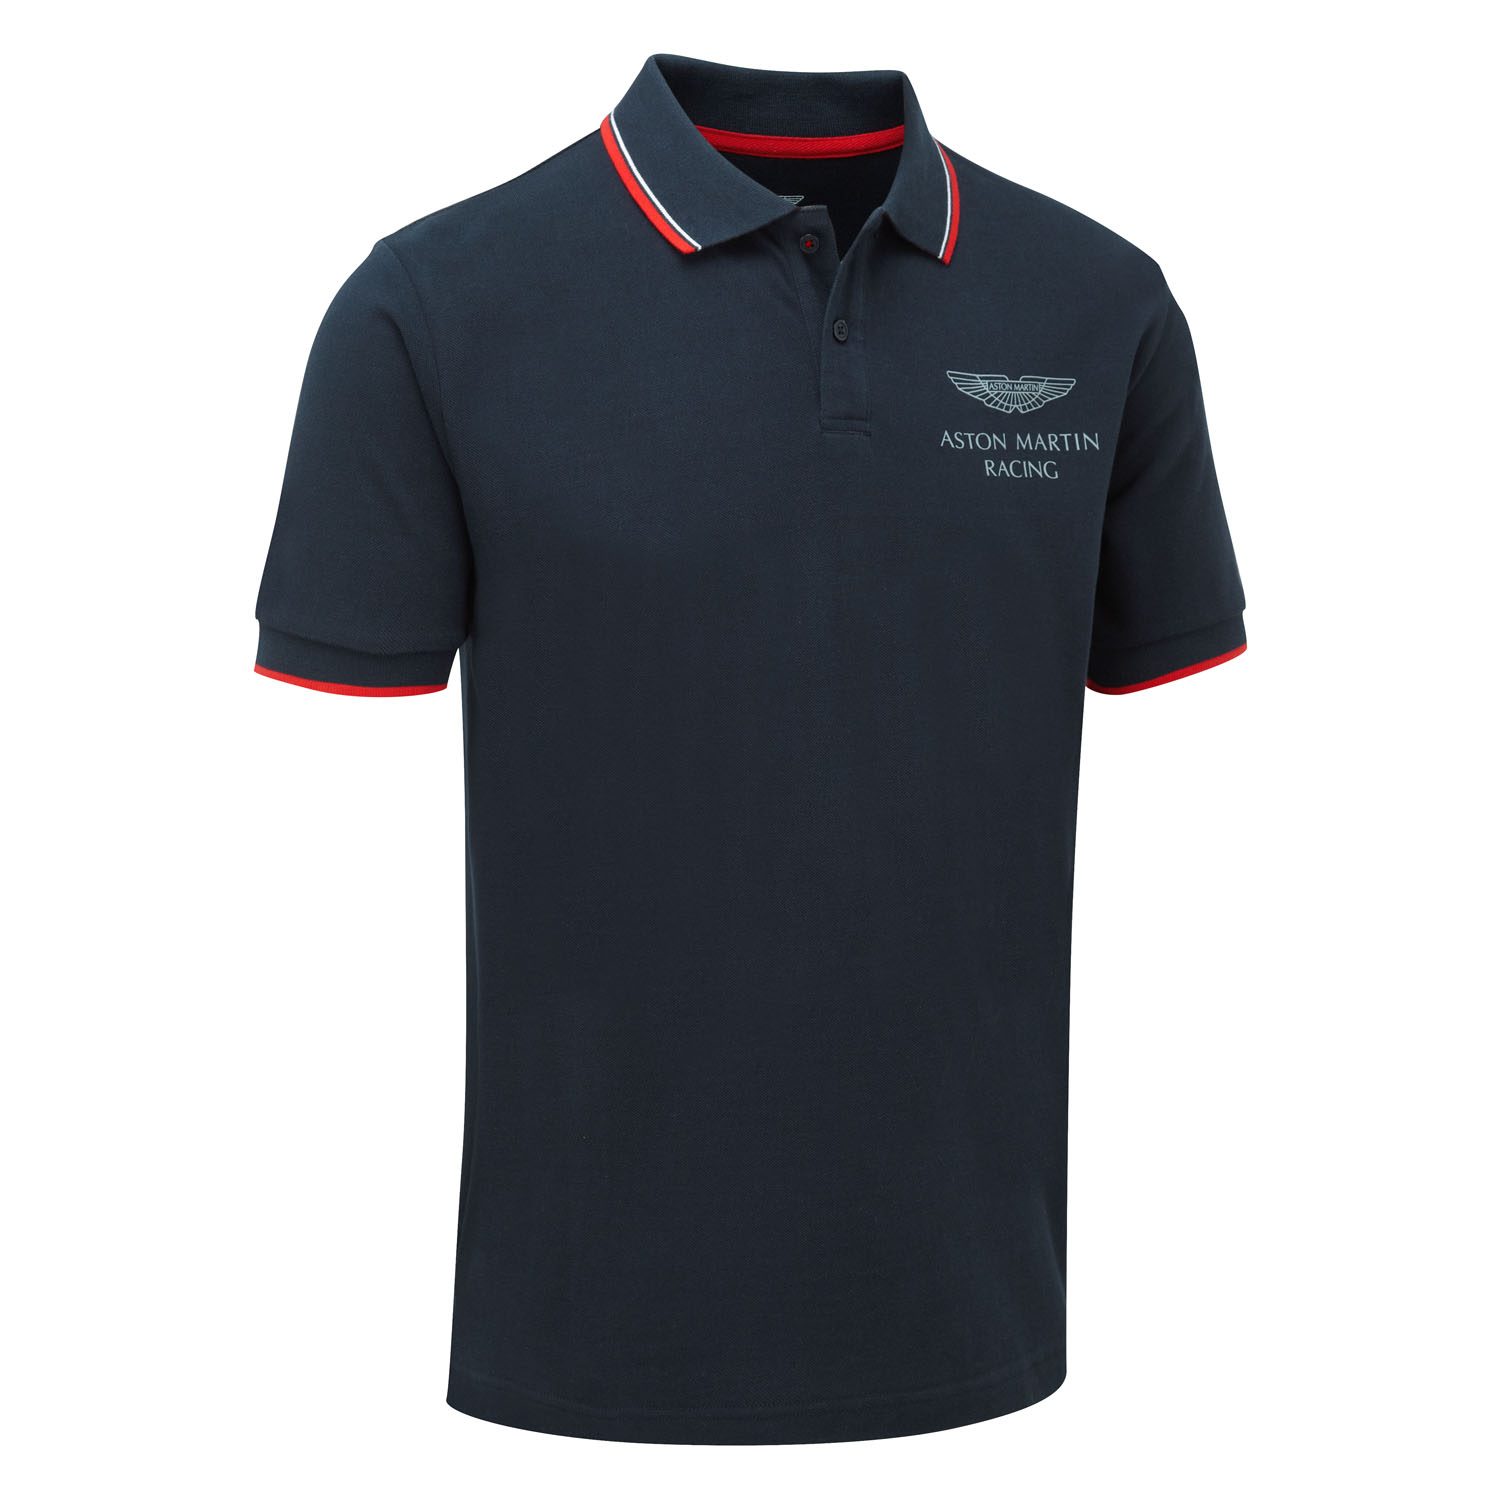 new 2016 aston martin racing team mens travel polo shirt. Black Bedroom Furniture Sets. Home Design Ideas